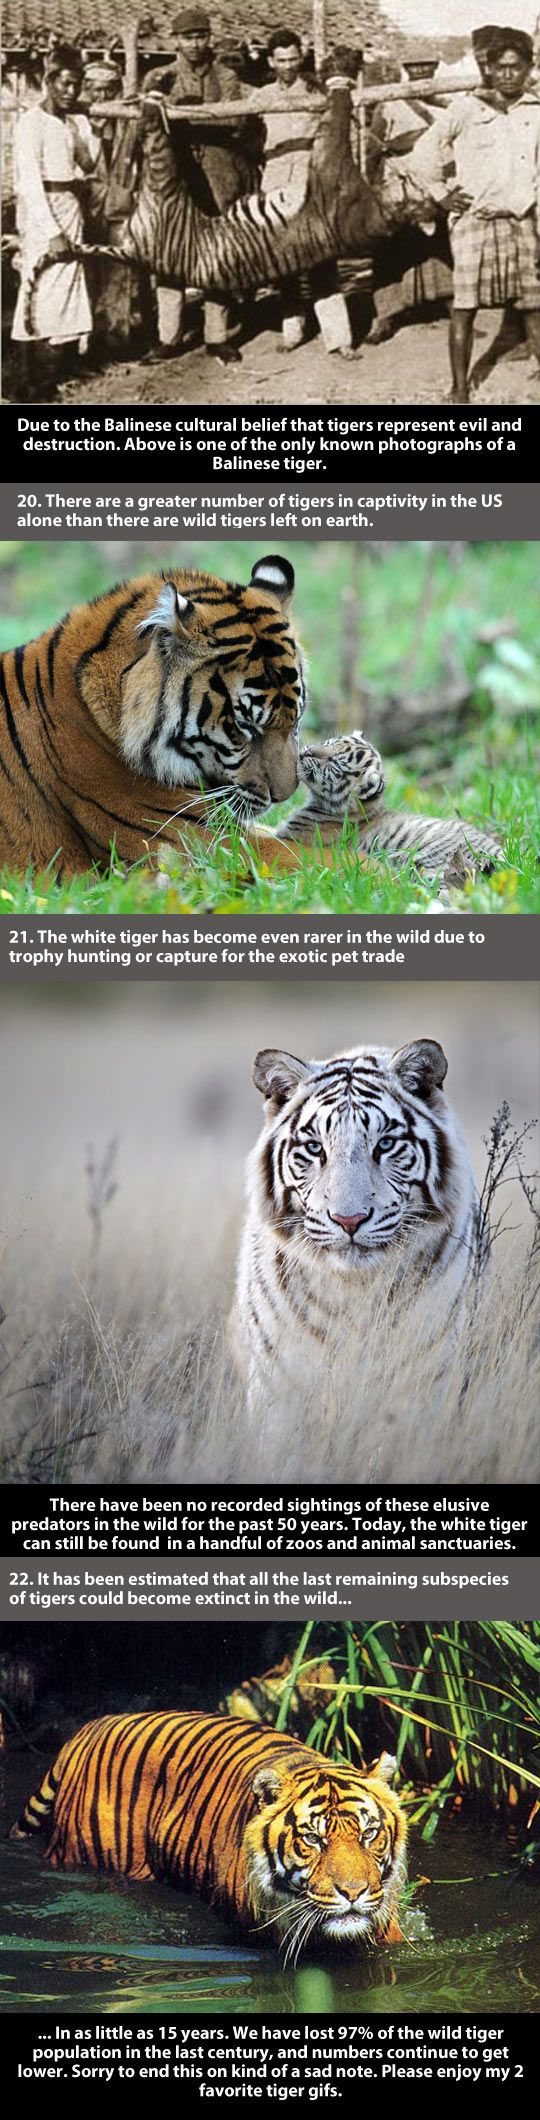 I want to cry. I couldnt imagaine my children never being able to see a tiger. They are too beautiful